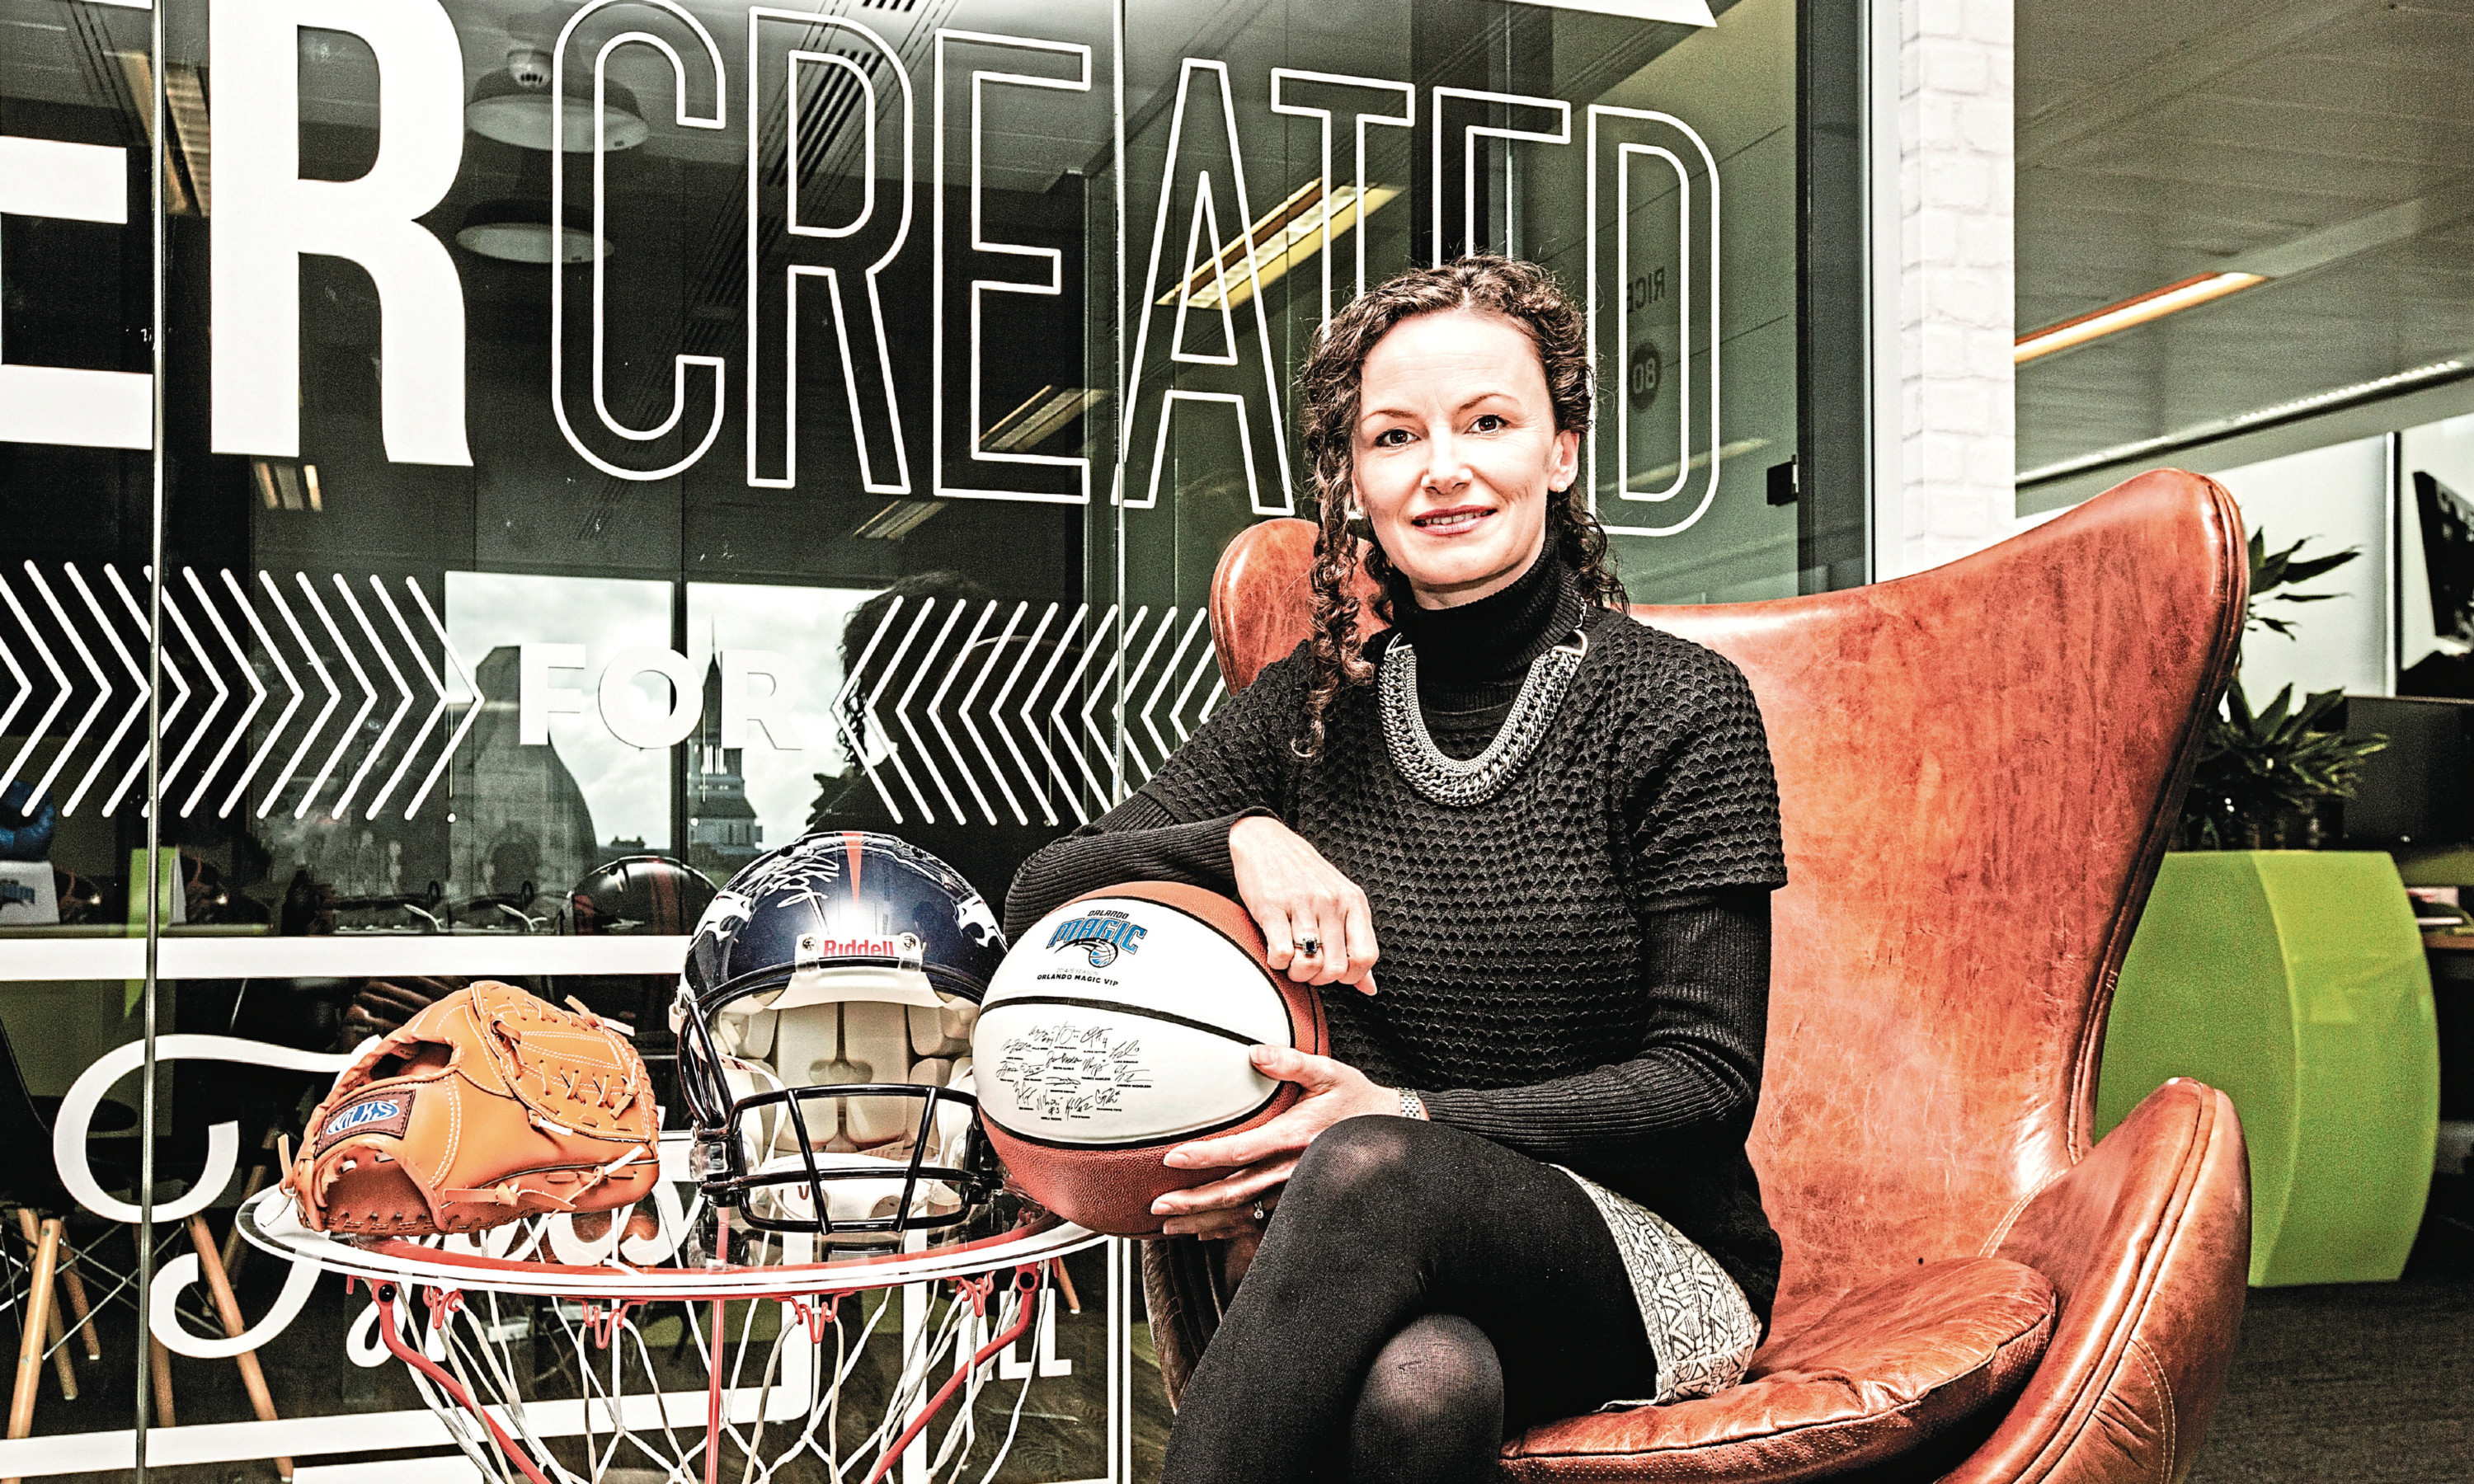 Co-founder Lesley Eccles has put the ball in FanDuels court after commencing legal action.